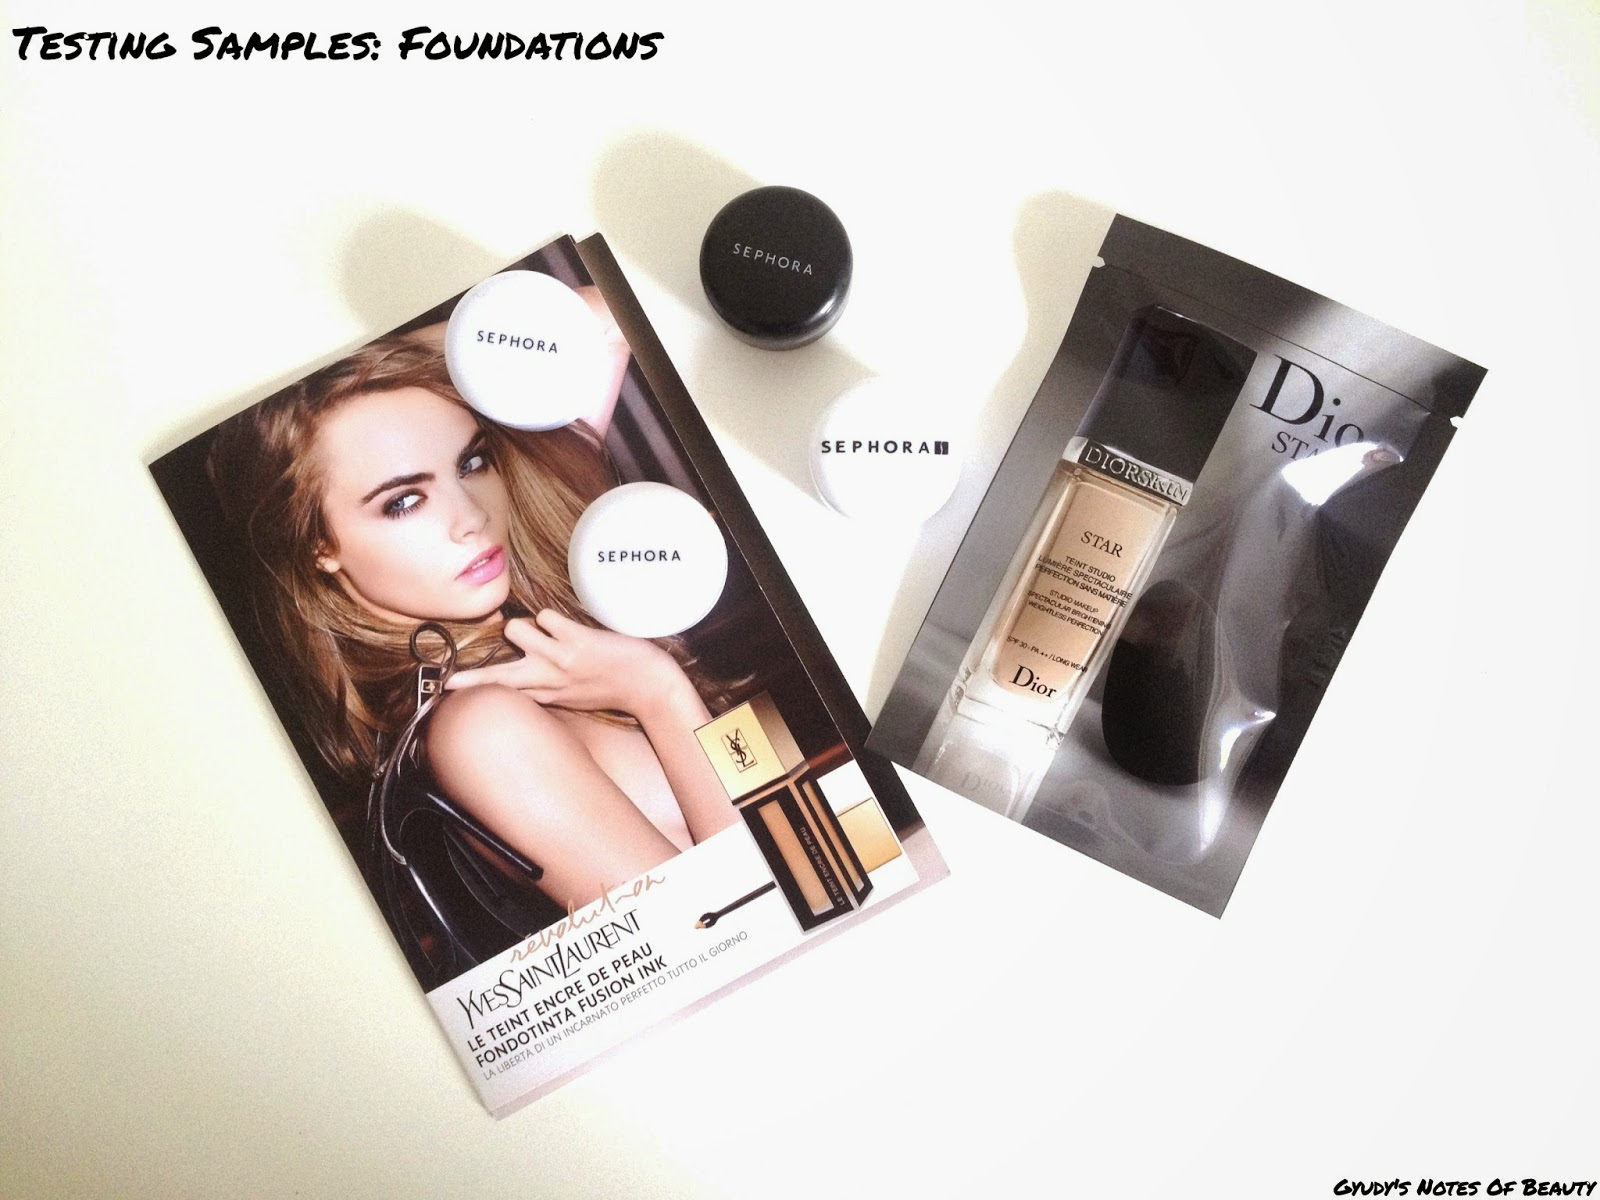 New Foundation Samples